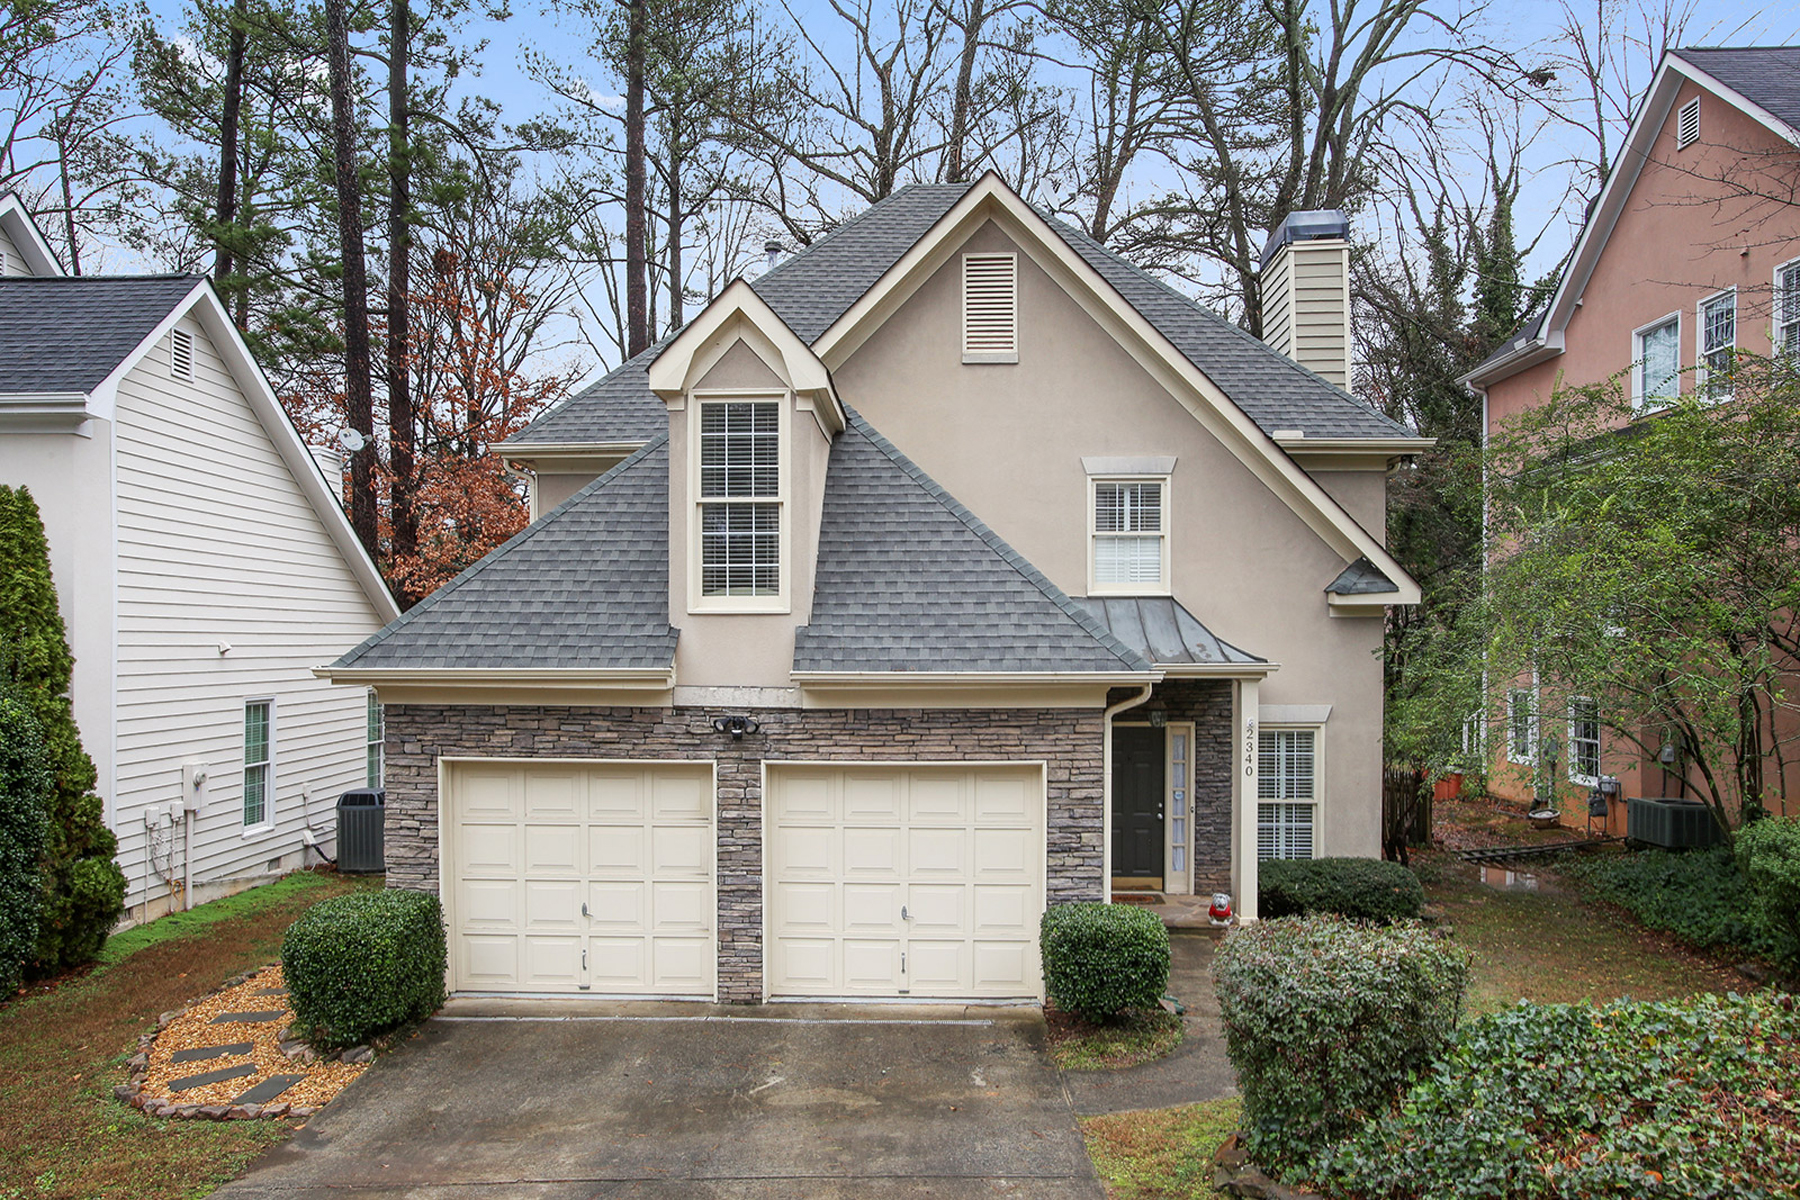 Single Family Home for Sale at Amazing Three Bedroom Two and One-Half Bath in Brookhaven 2340 Logan Circle NE Brookhaven, Atlanta, Georgia, 30319 United States